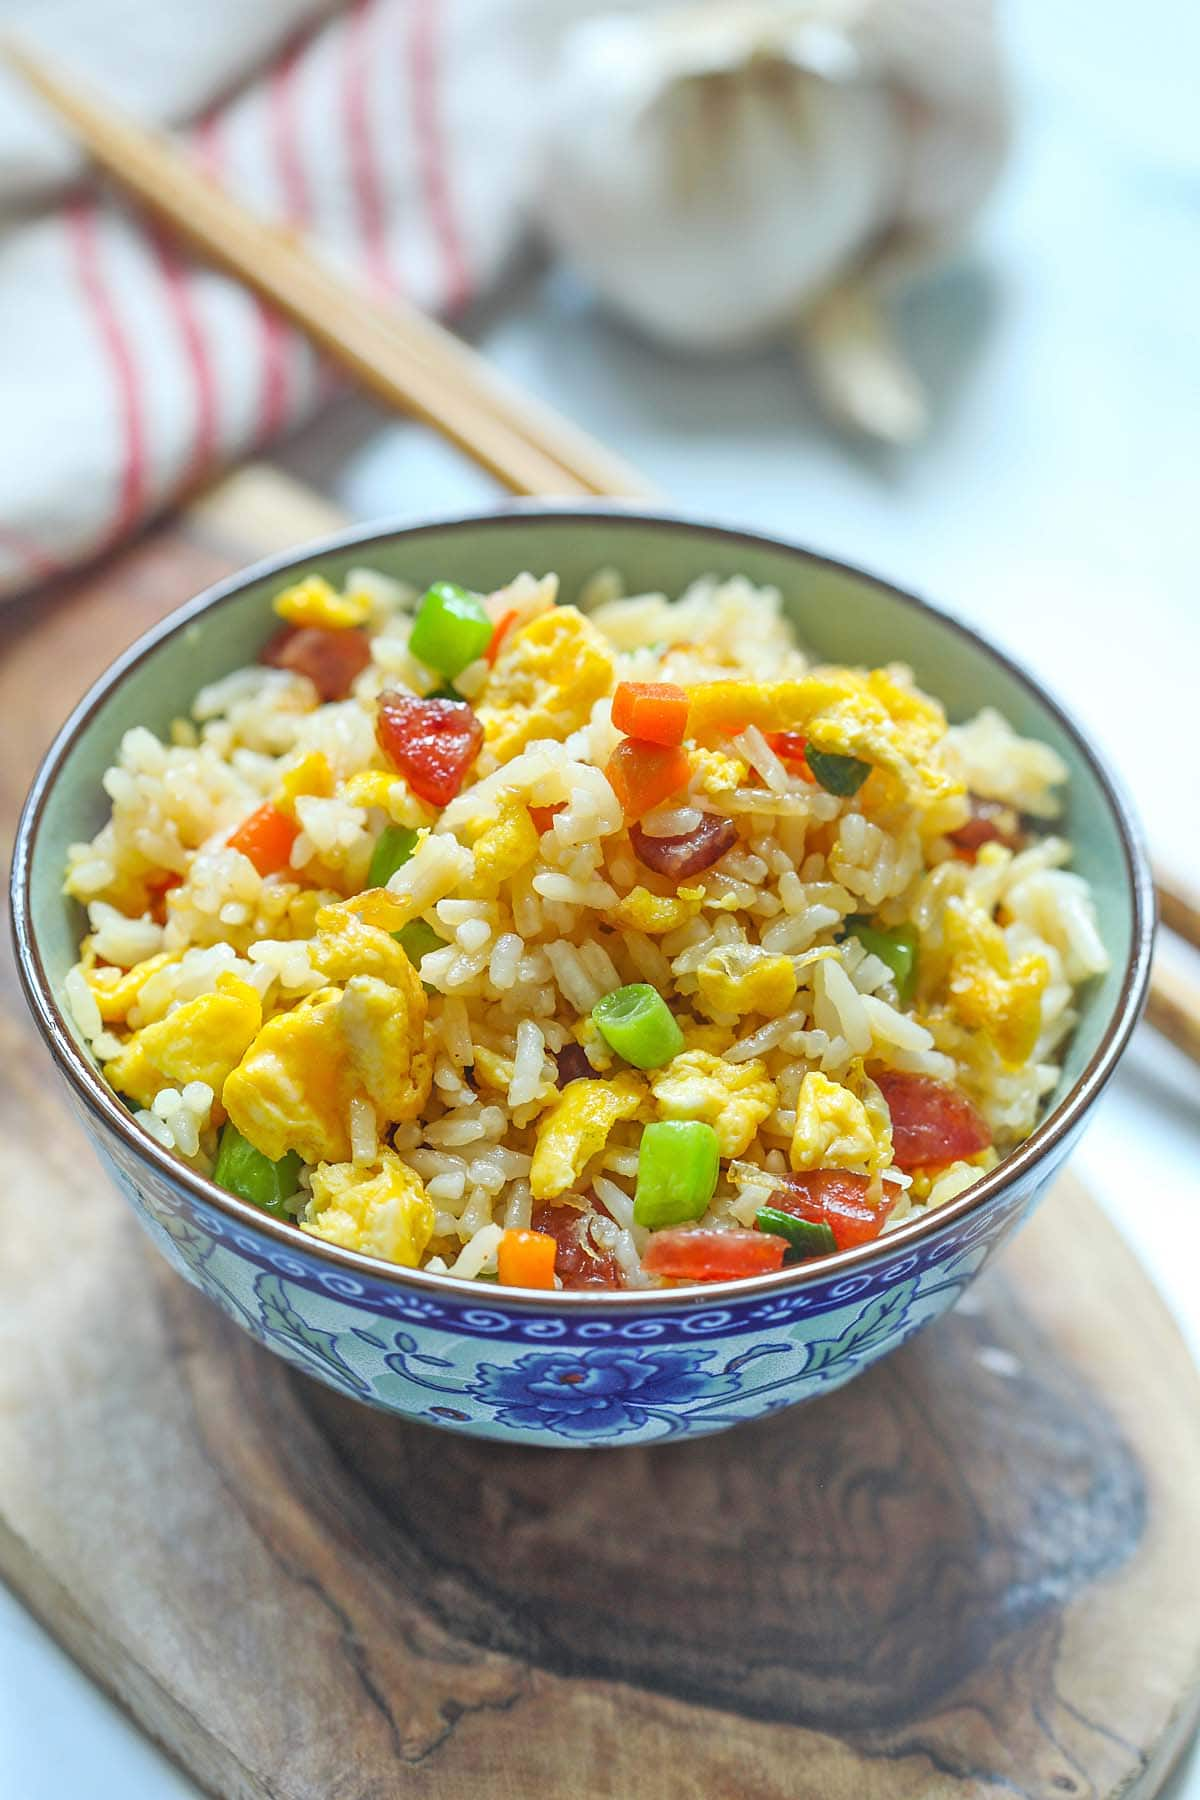 Chinese fried rice in a Chinese bowl.